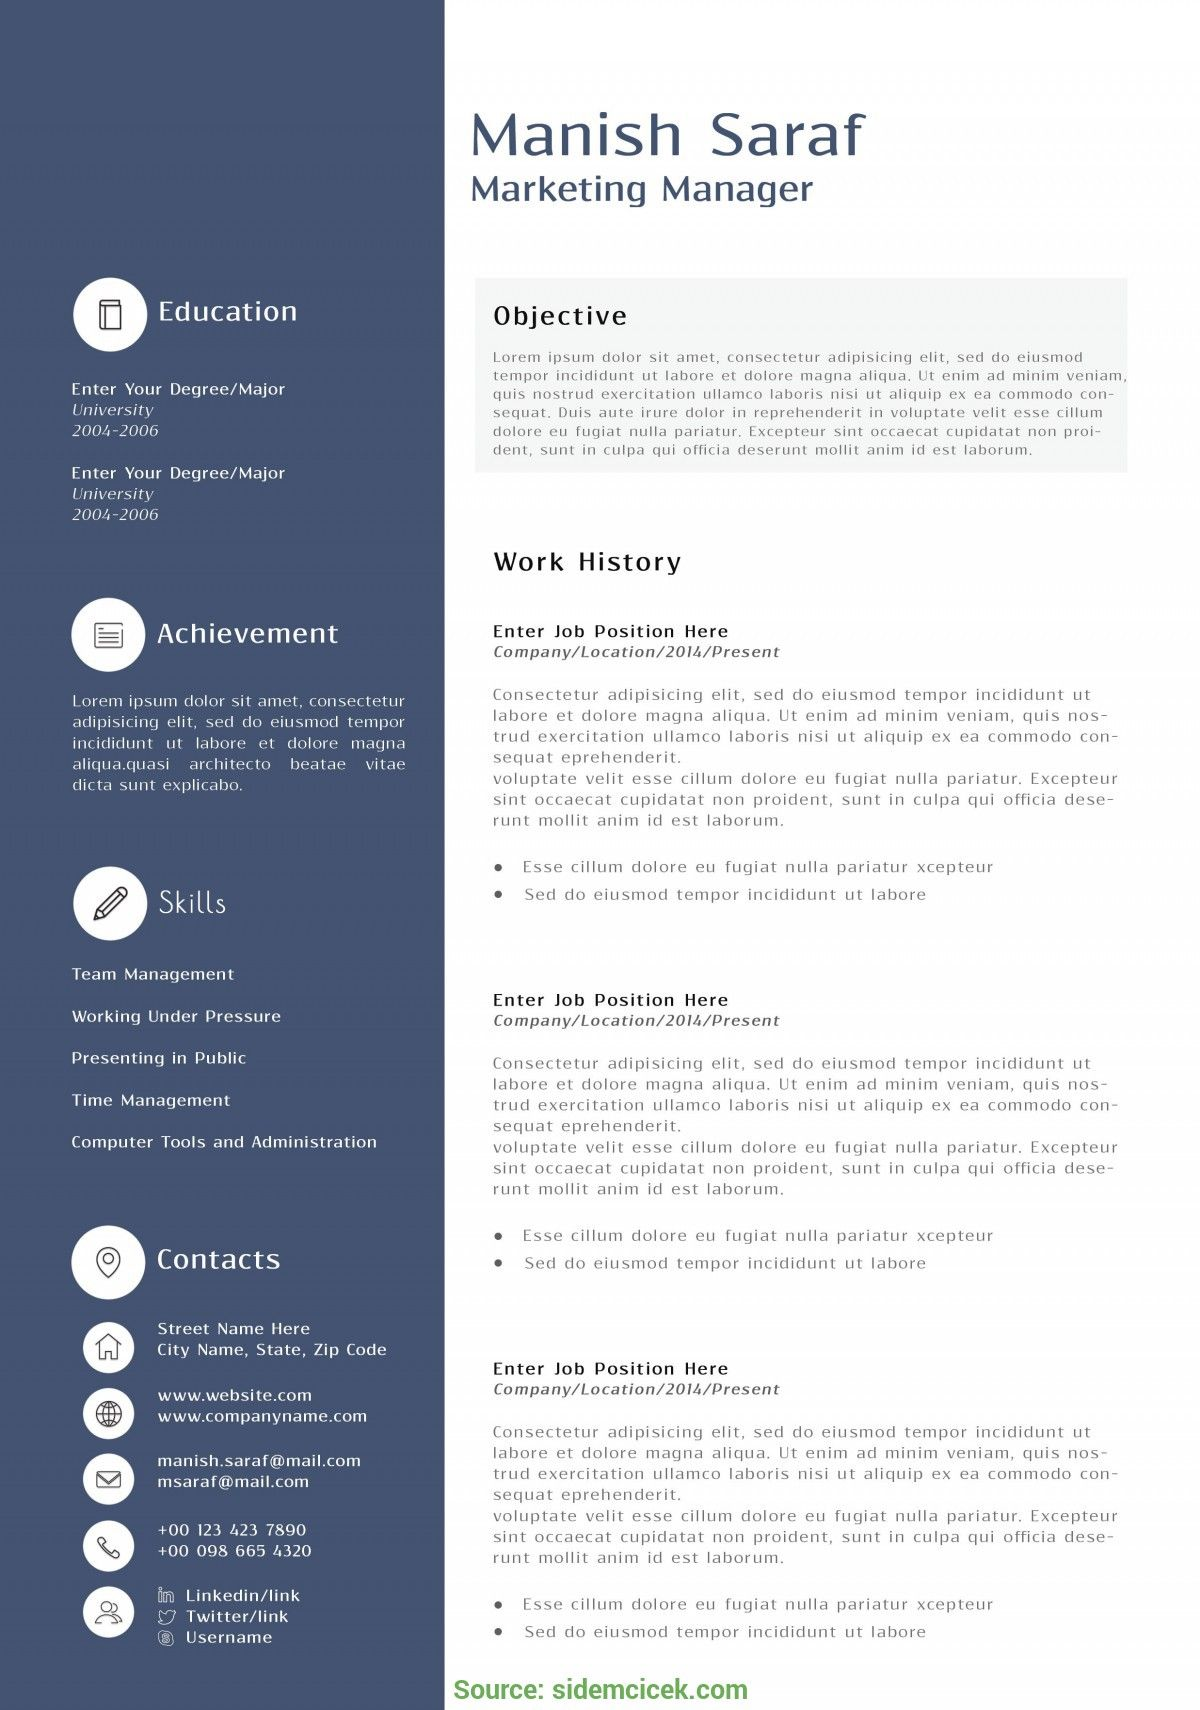 resume examples website is for resources and information marketing templates best free Resume Free Marketing Resume Samples